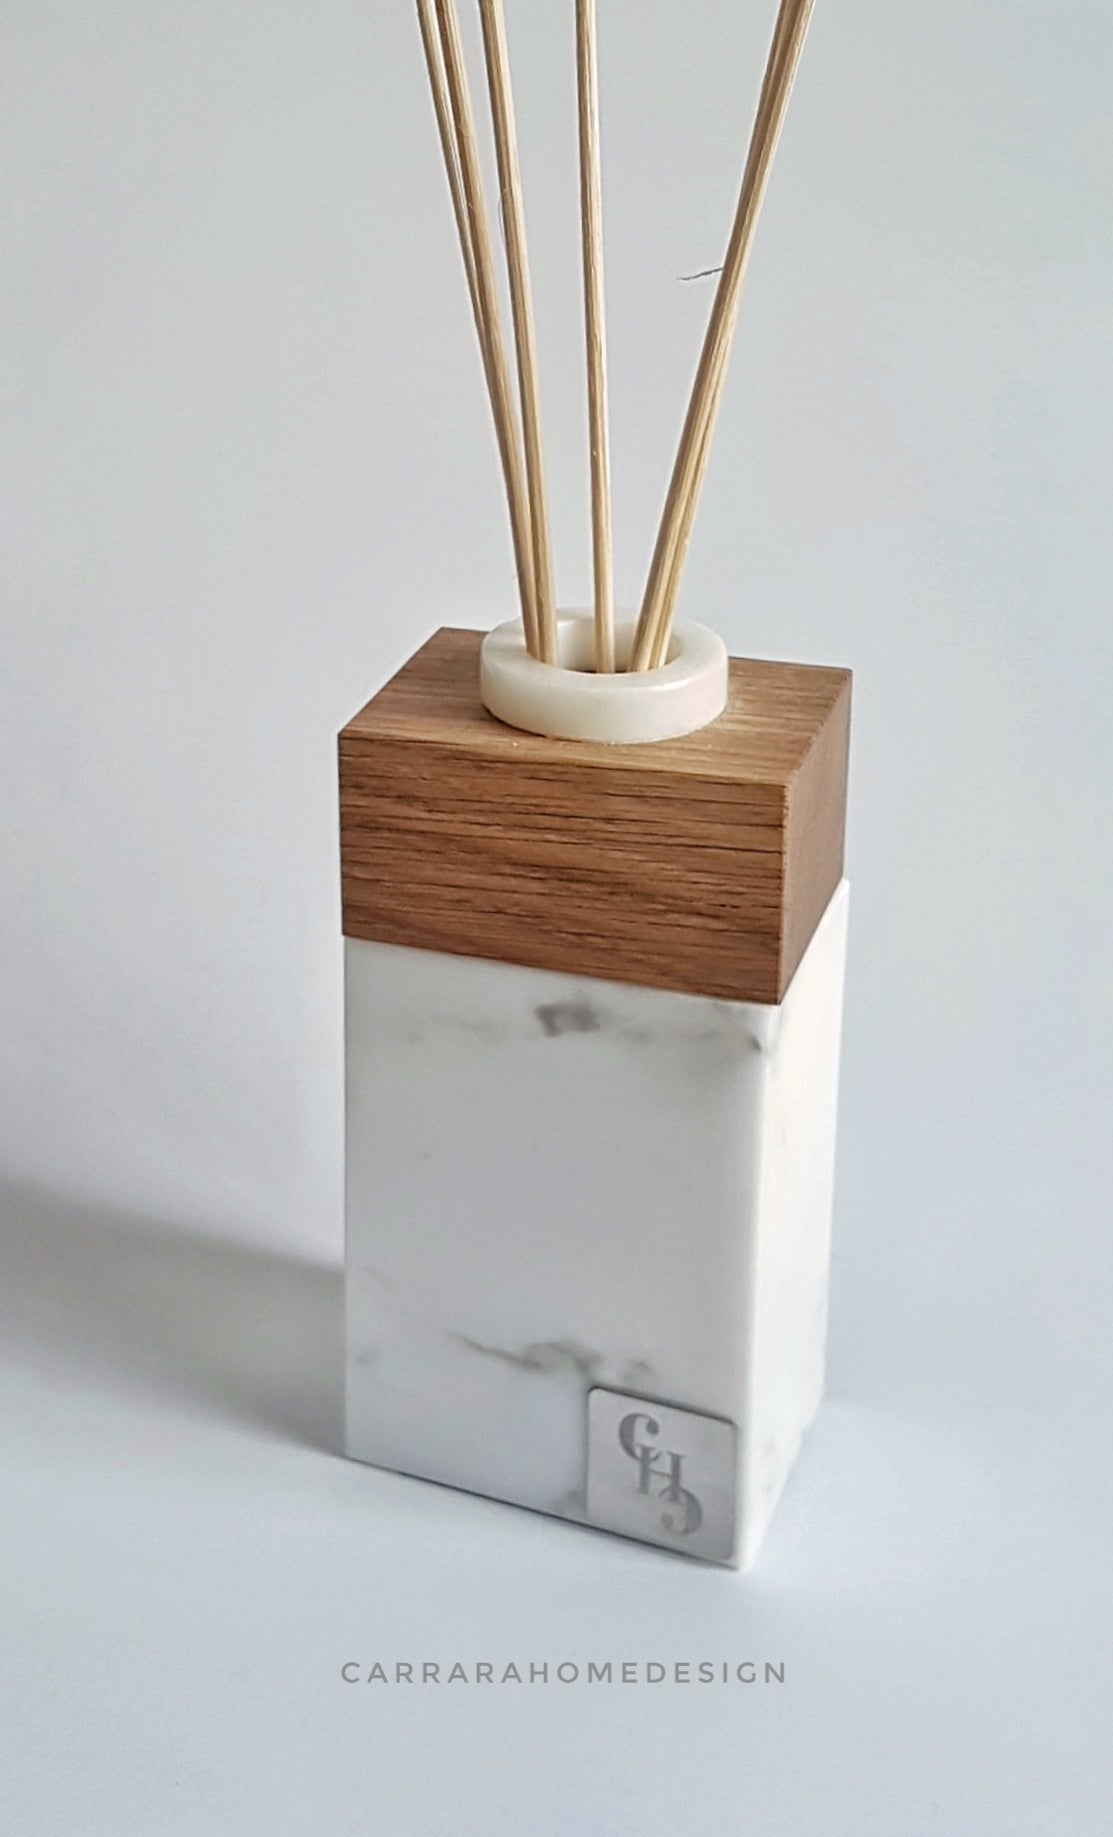 Aroma Diffuser by CARRARA_HOME_DESIGN in Marmo Statuario